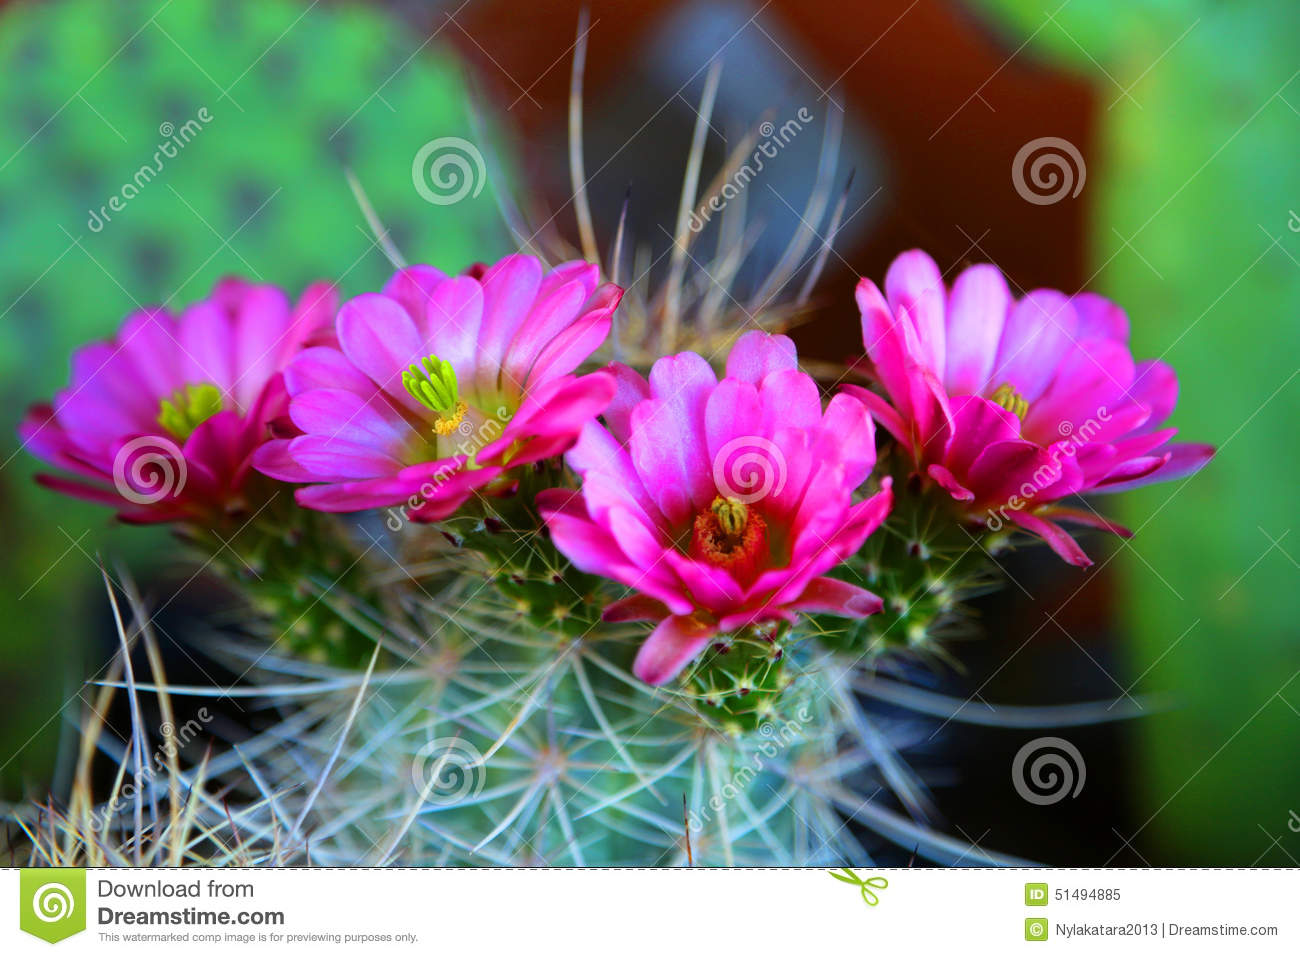 plant cactus pink flower how to make it darker pink